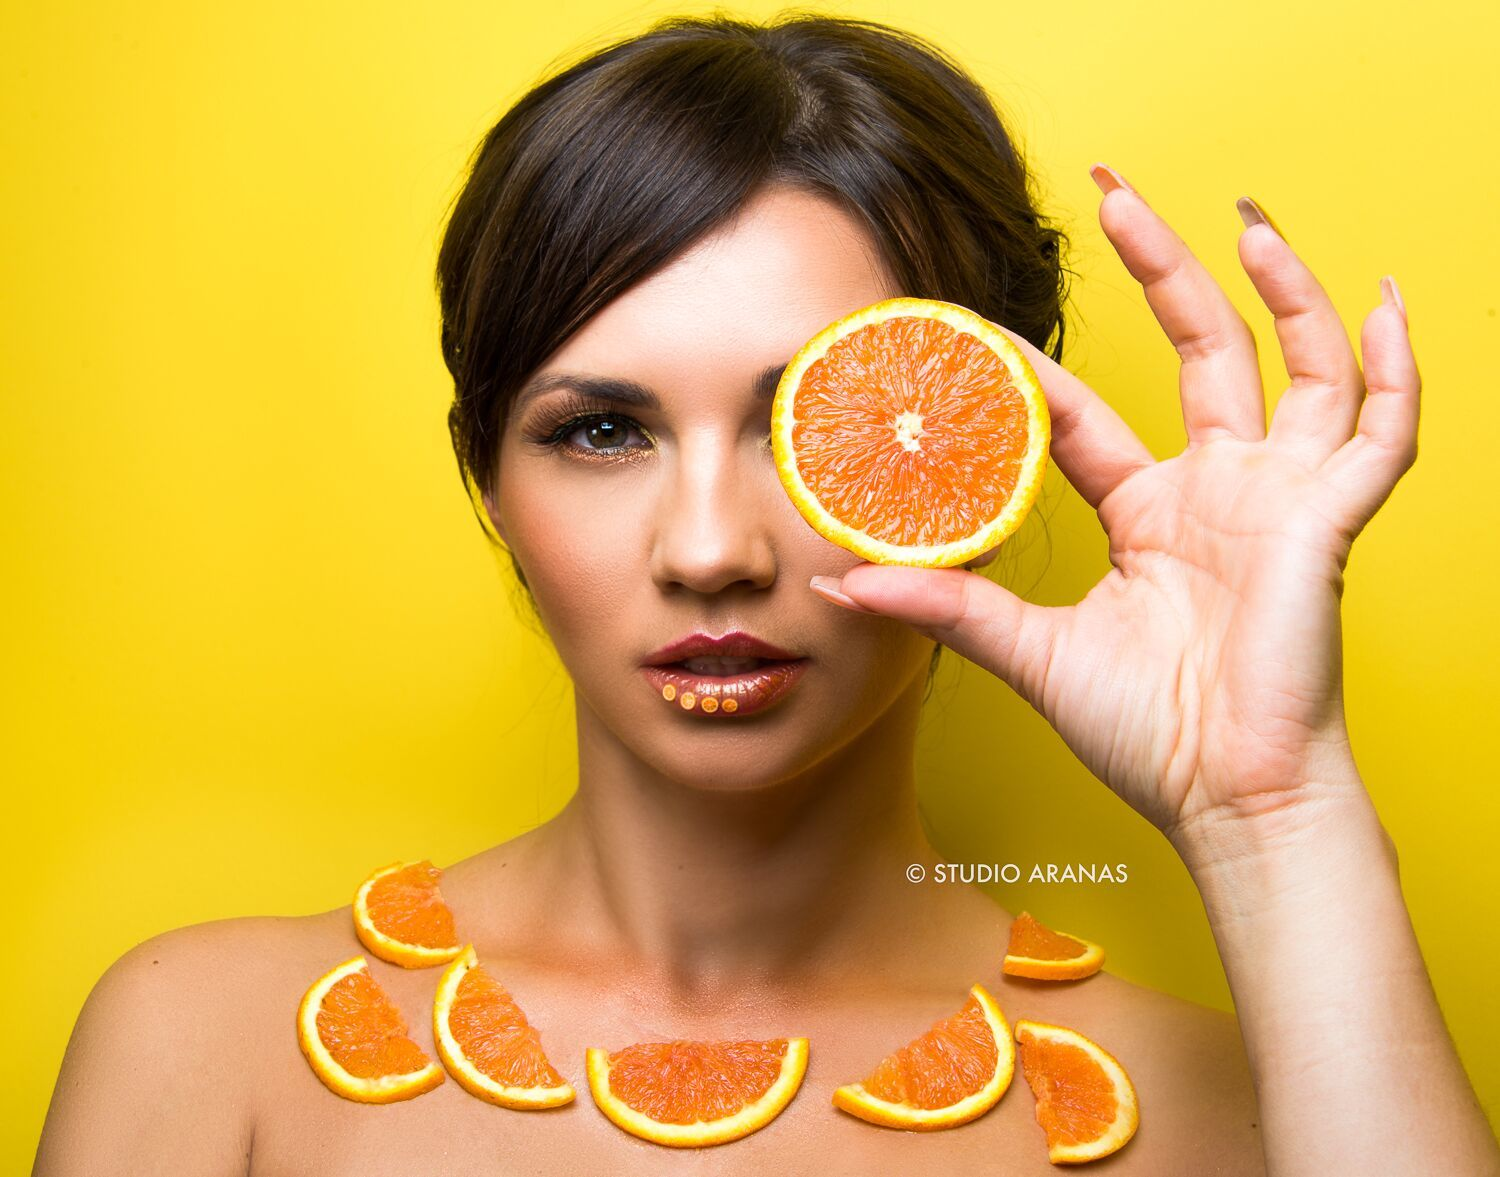 Published Fruit Shoot: Orange